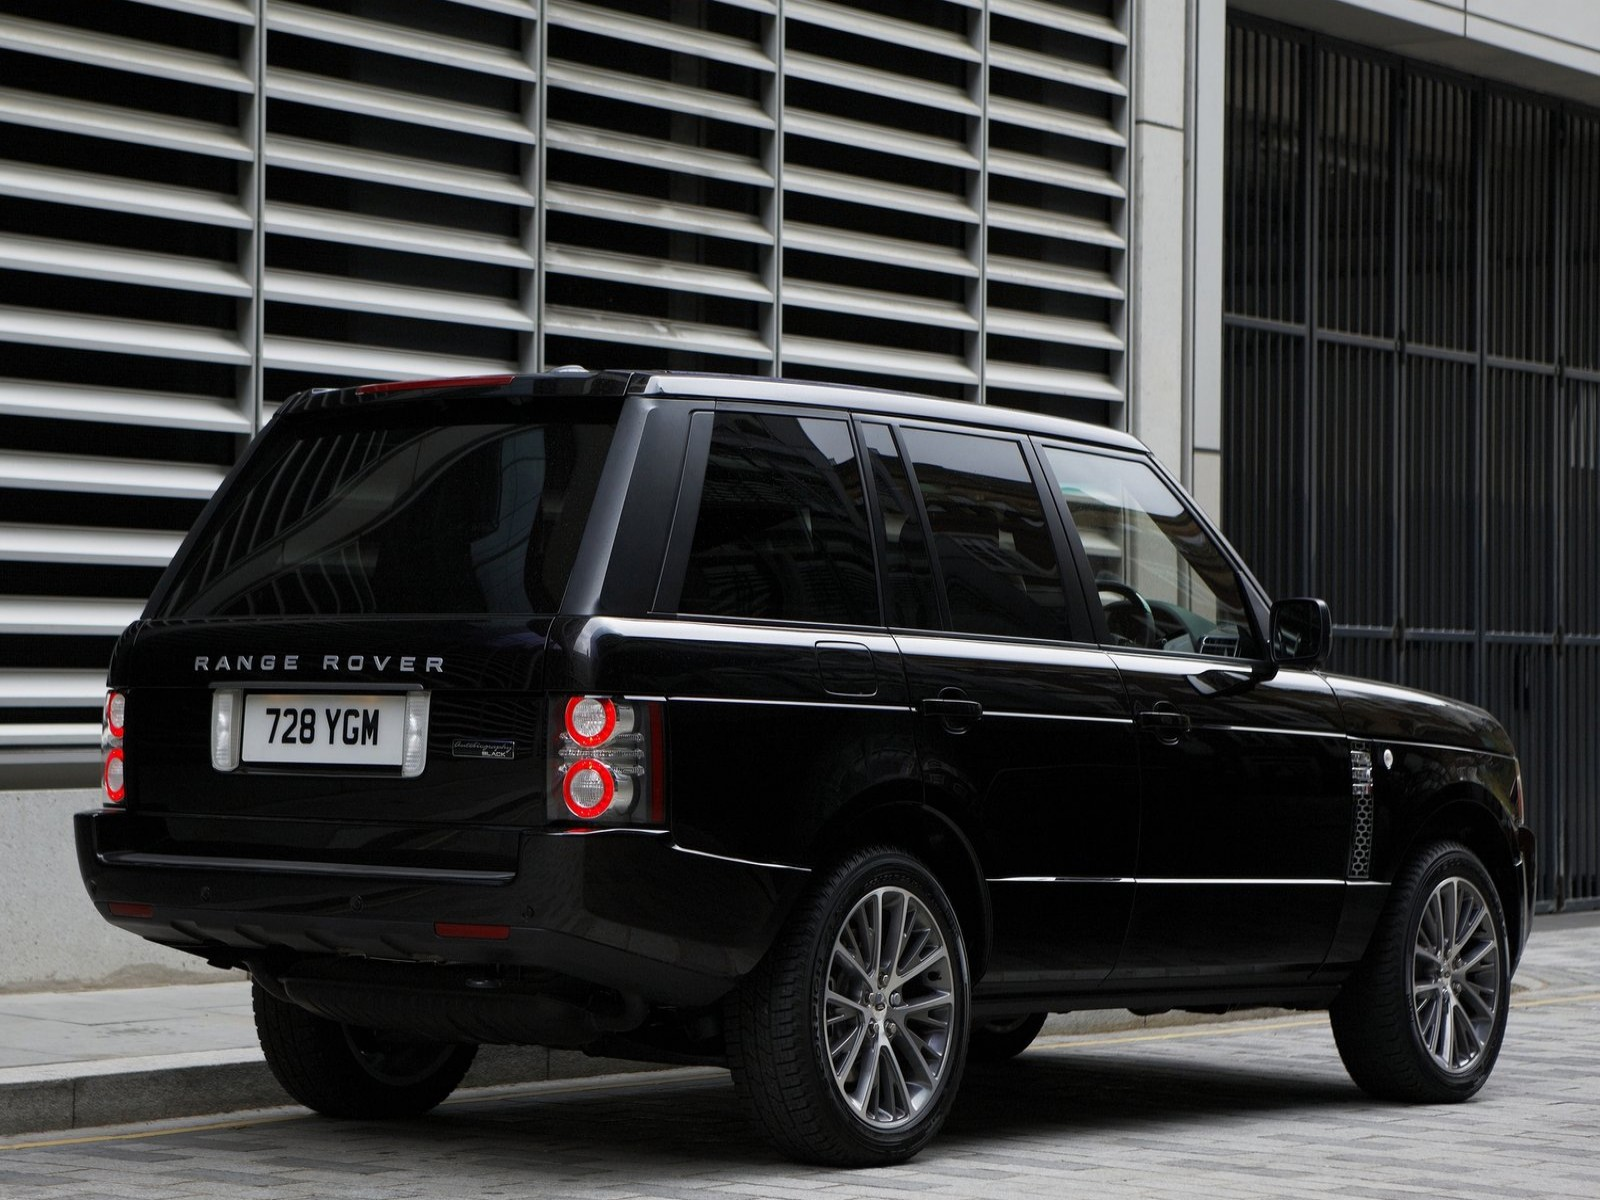 Land Rover Range Rover Autobiography technical details history